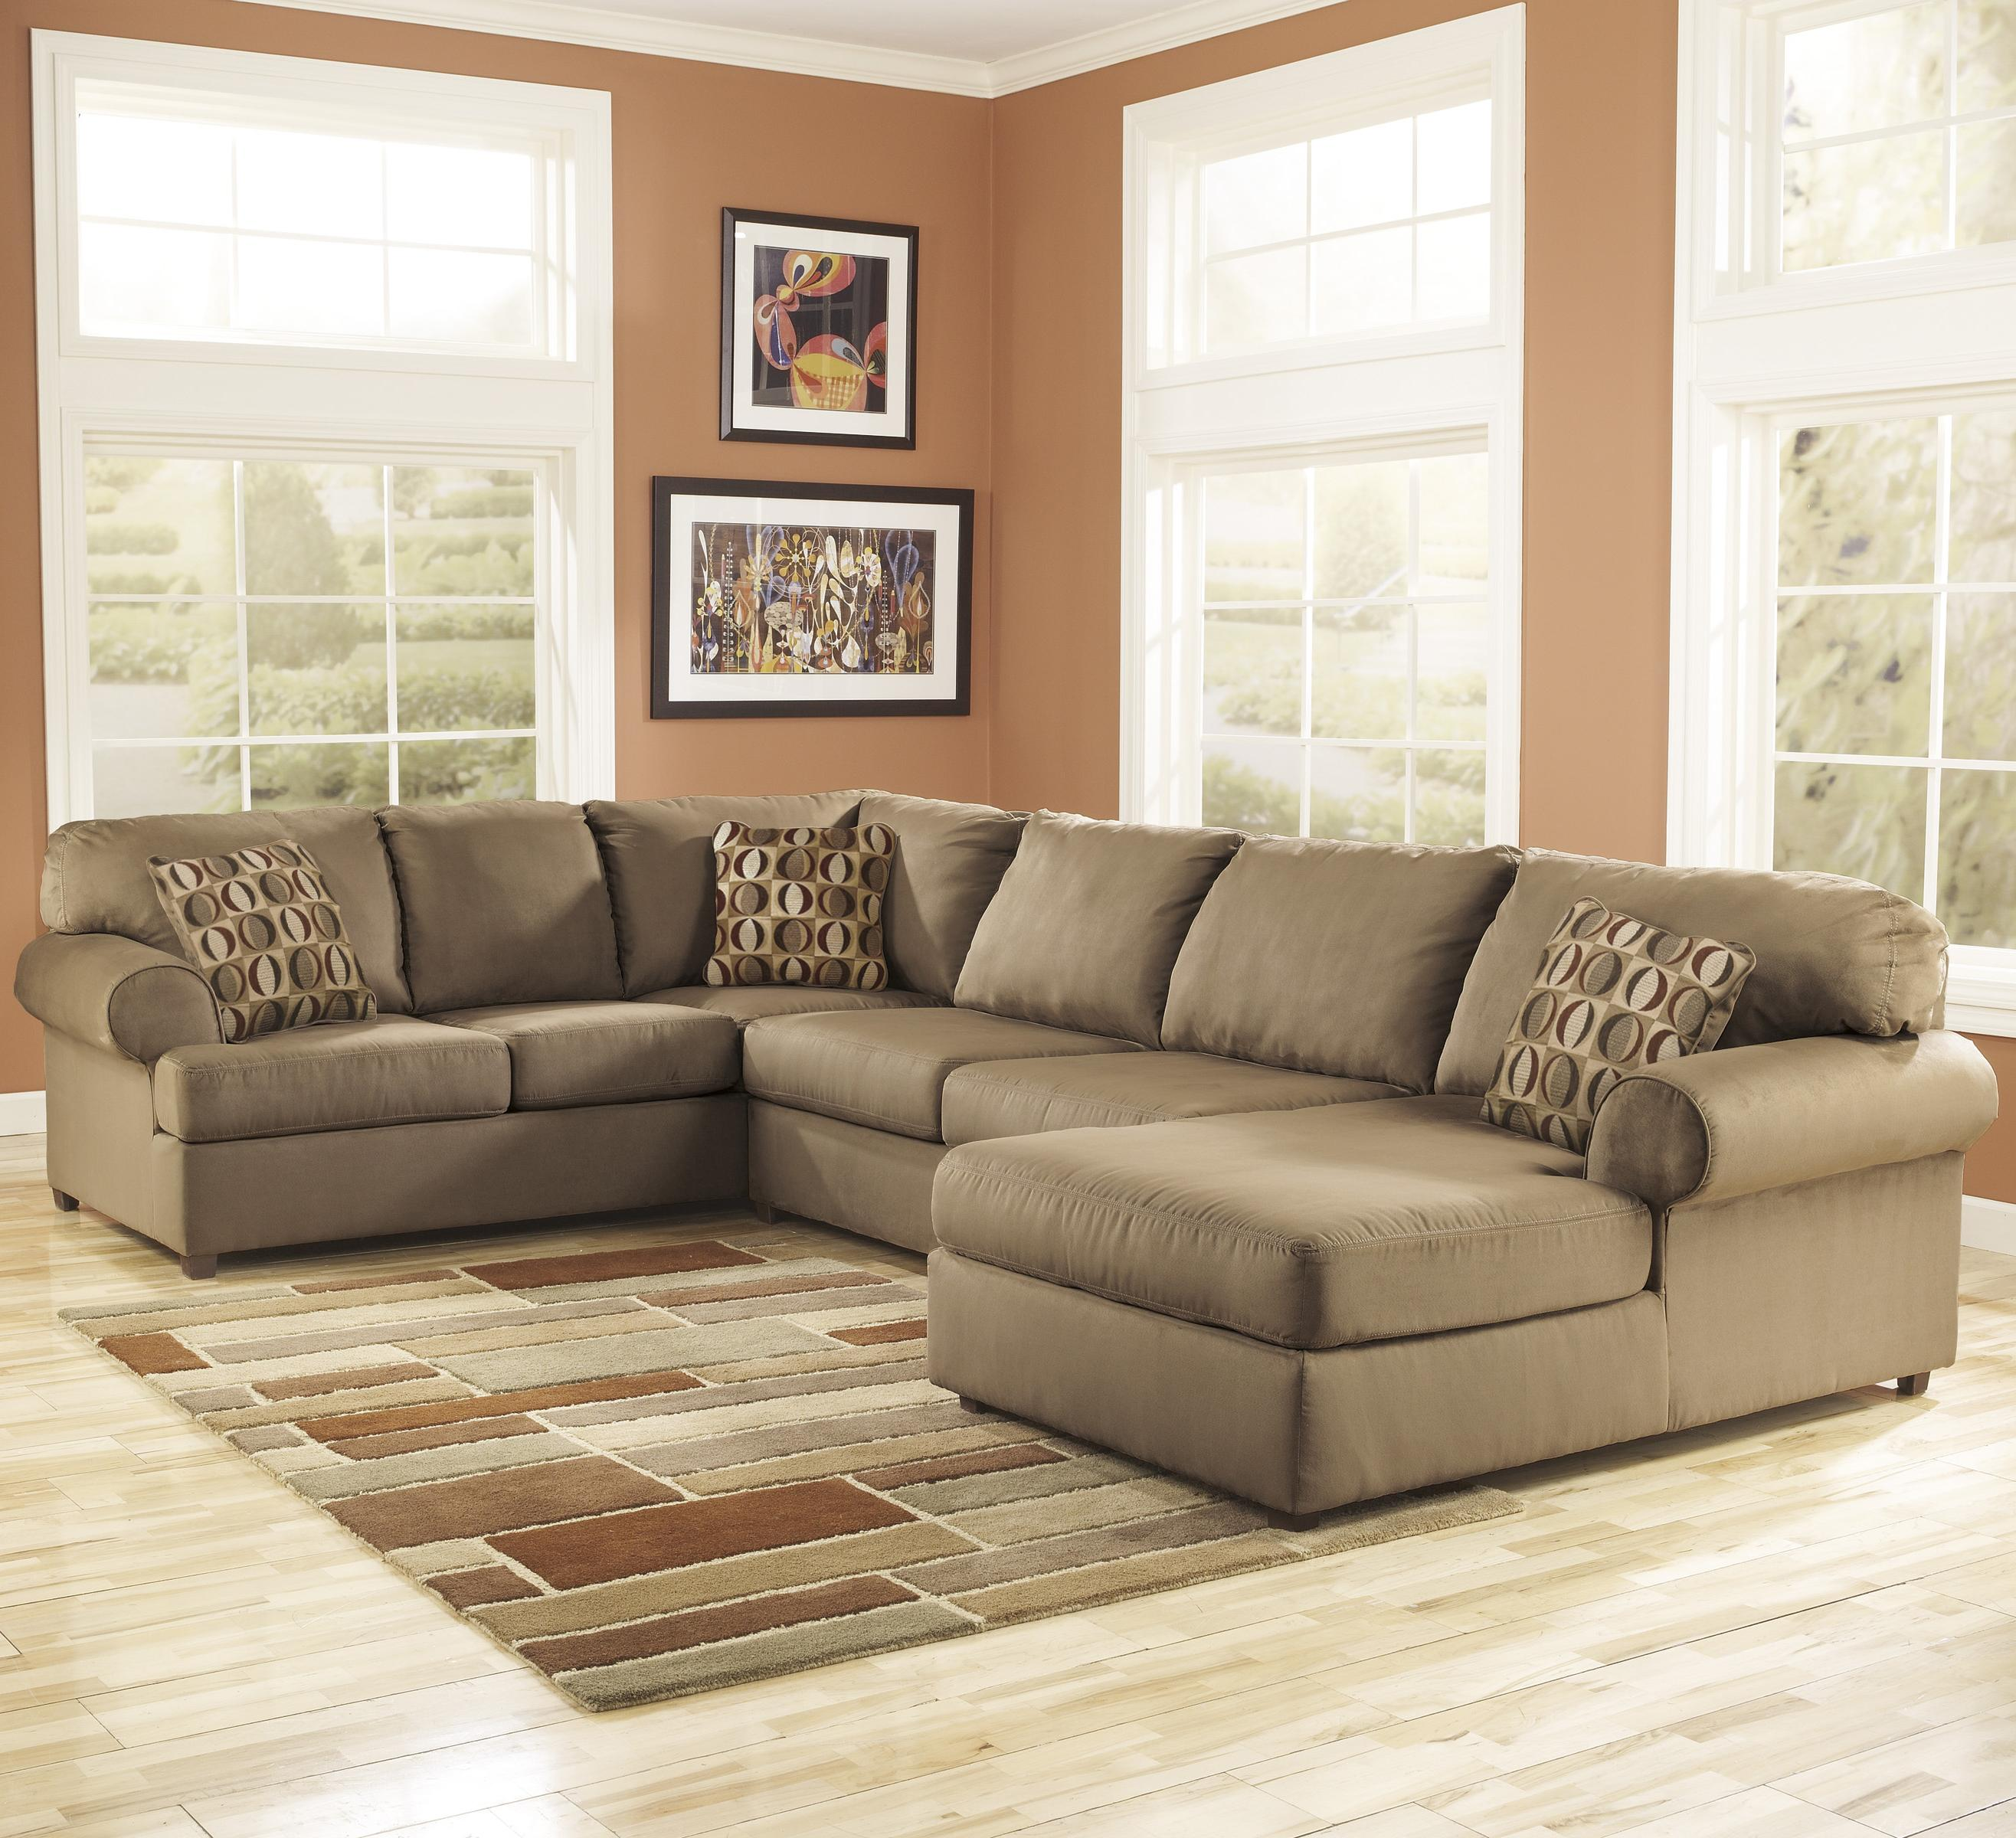 Signature Design by Ashley Cowan - Mocha RAF Corner Sectional - Item Number: 3070317+34+66